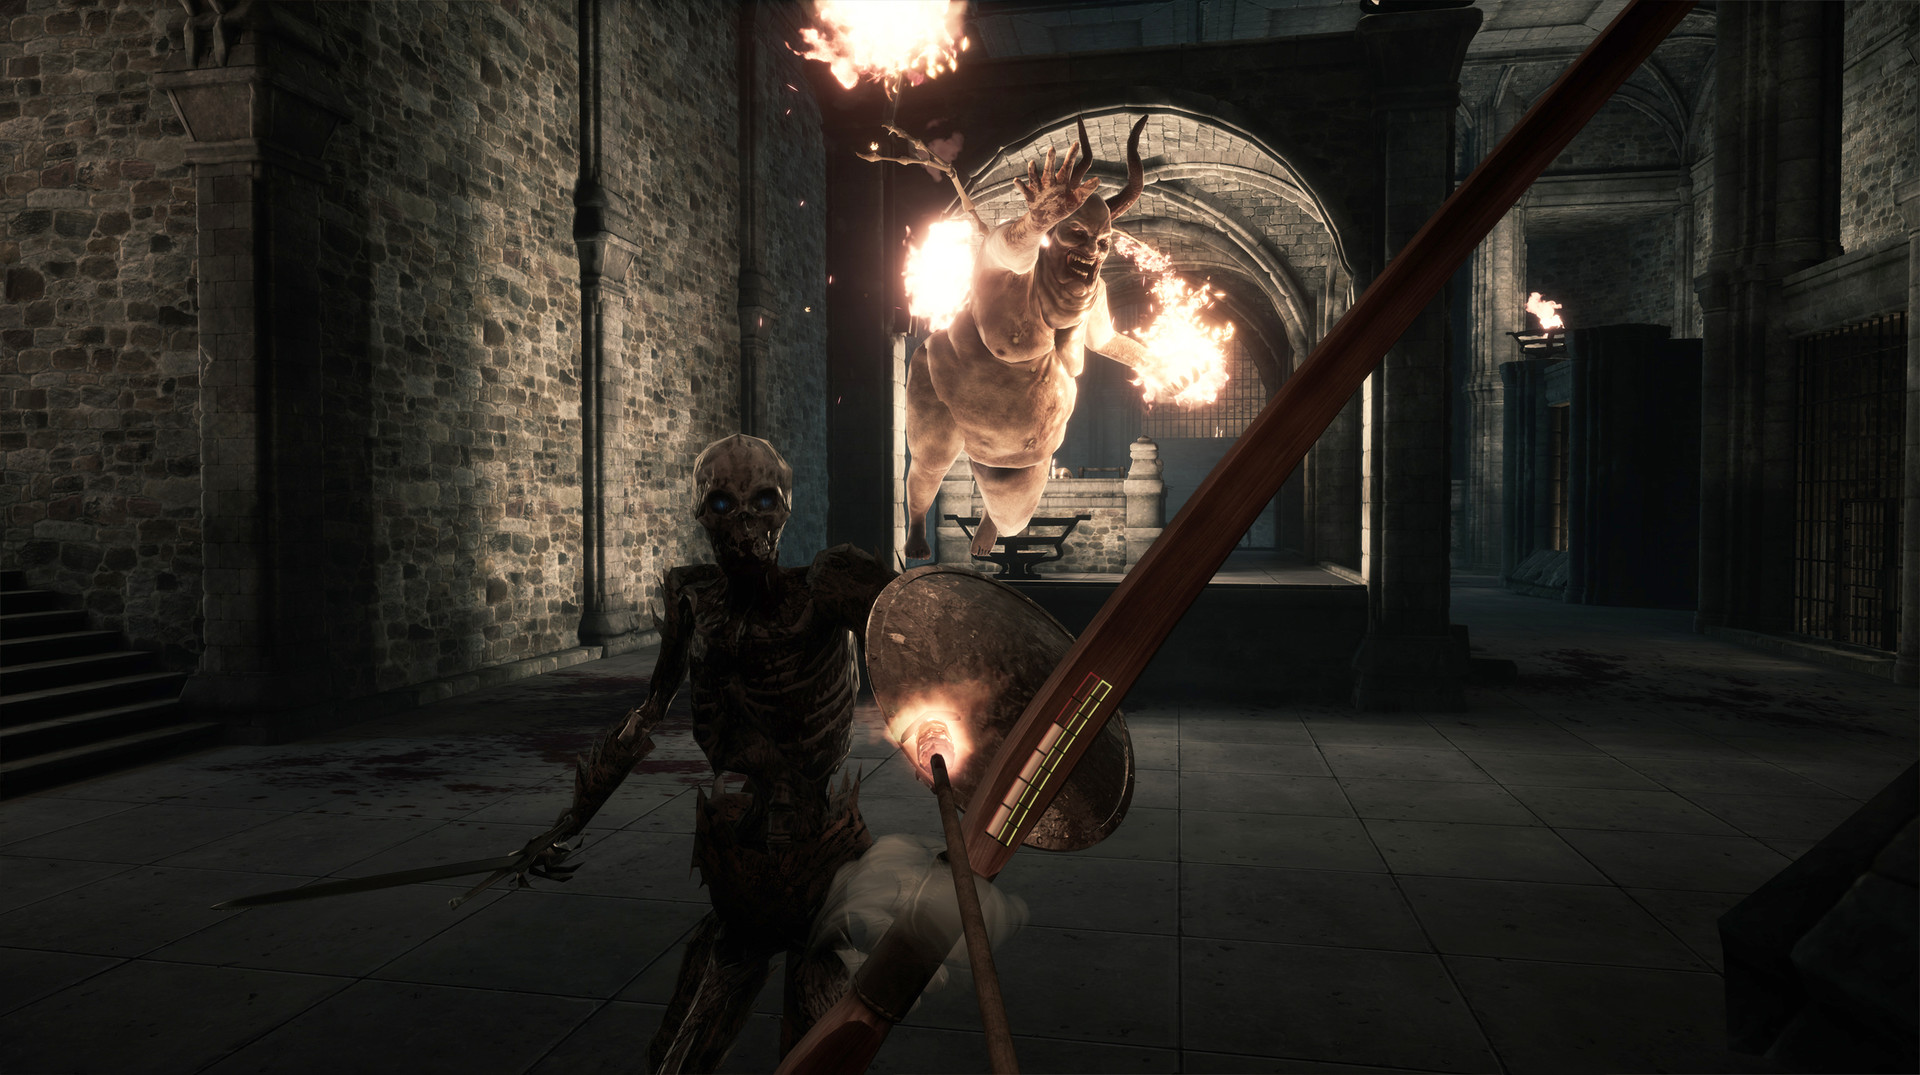 Giveaway Win A Free Copy Of In Death On Steam For Rift Or Vive